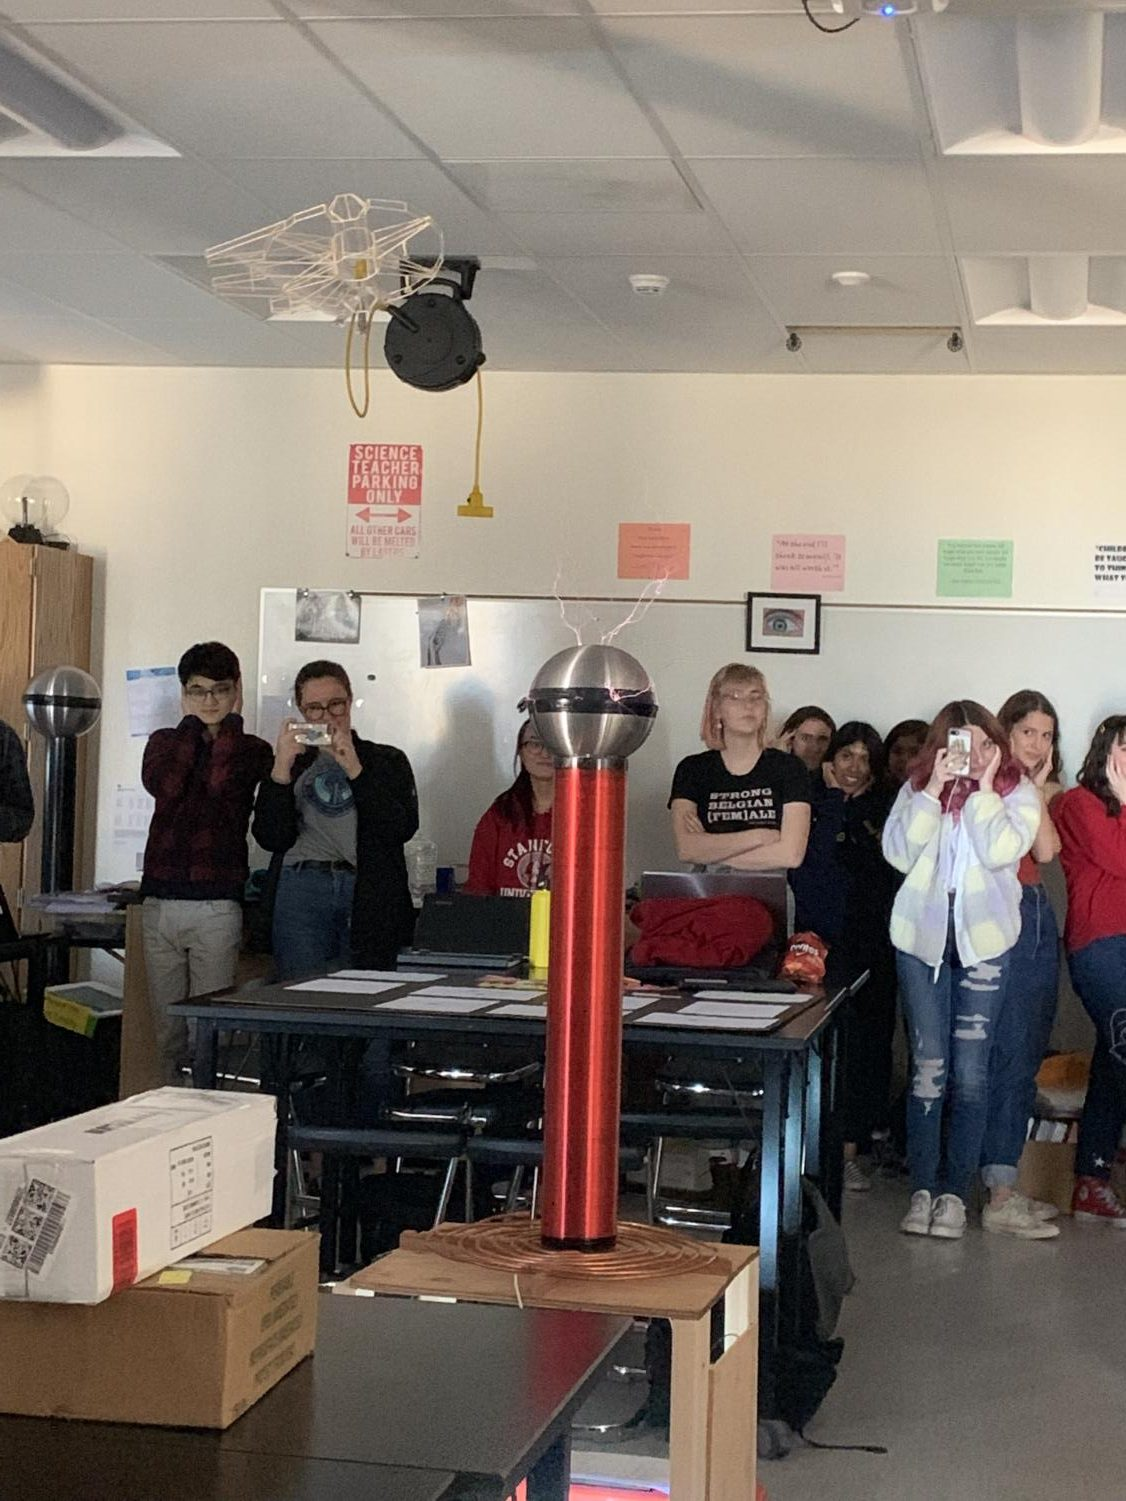 The Tesla Coil was tested three separate times during the class, shocking students with it's loud sounds.